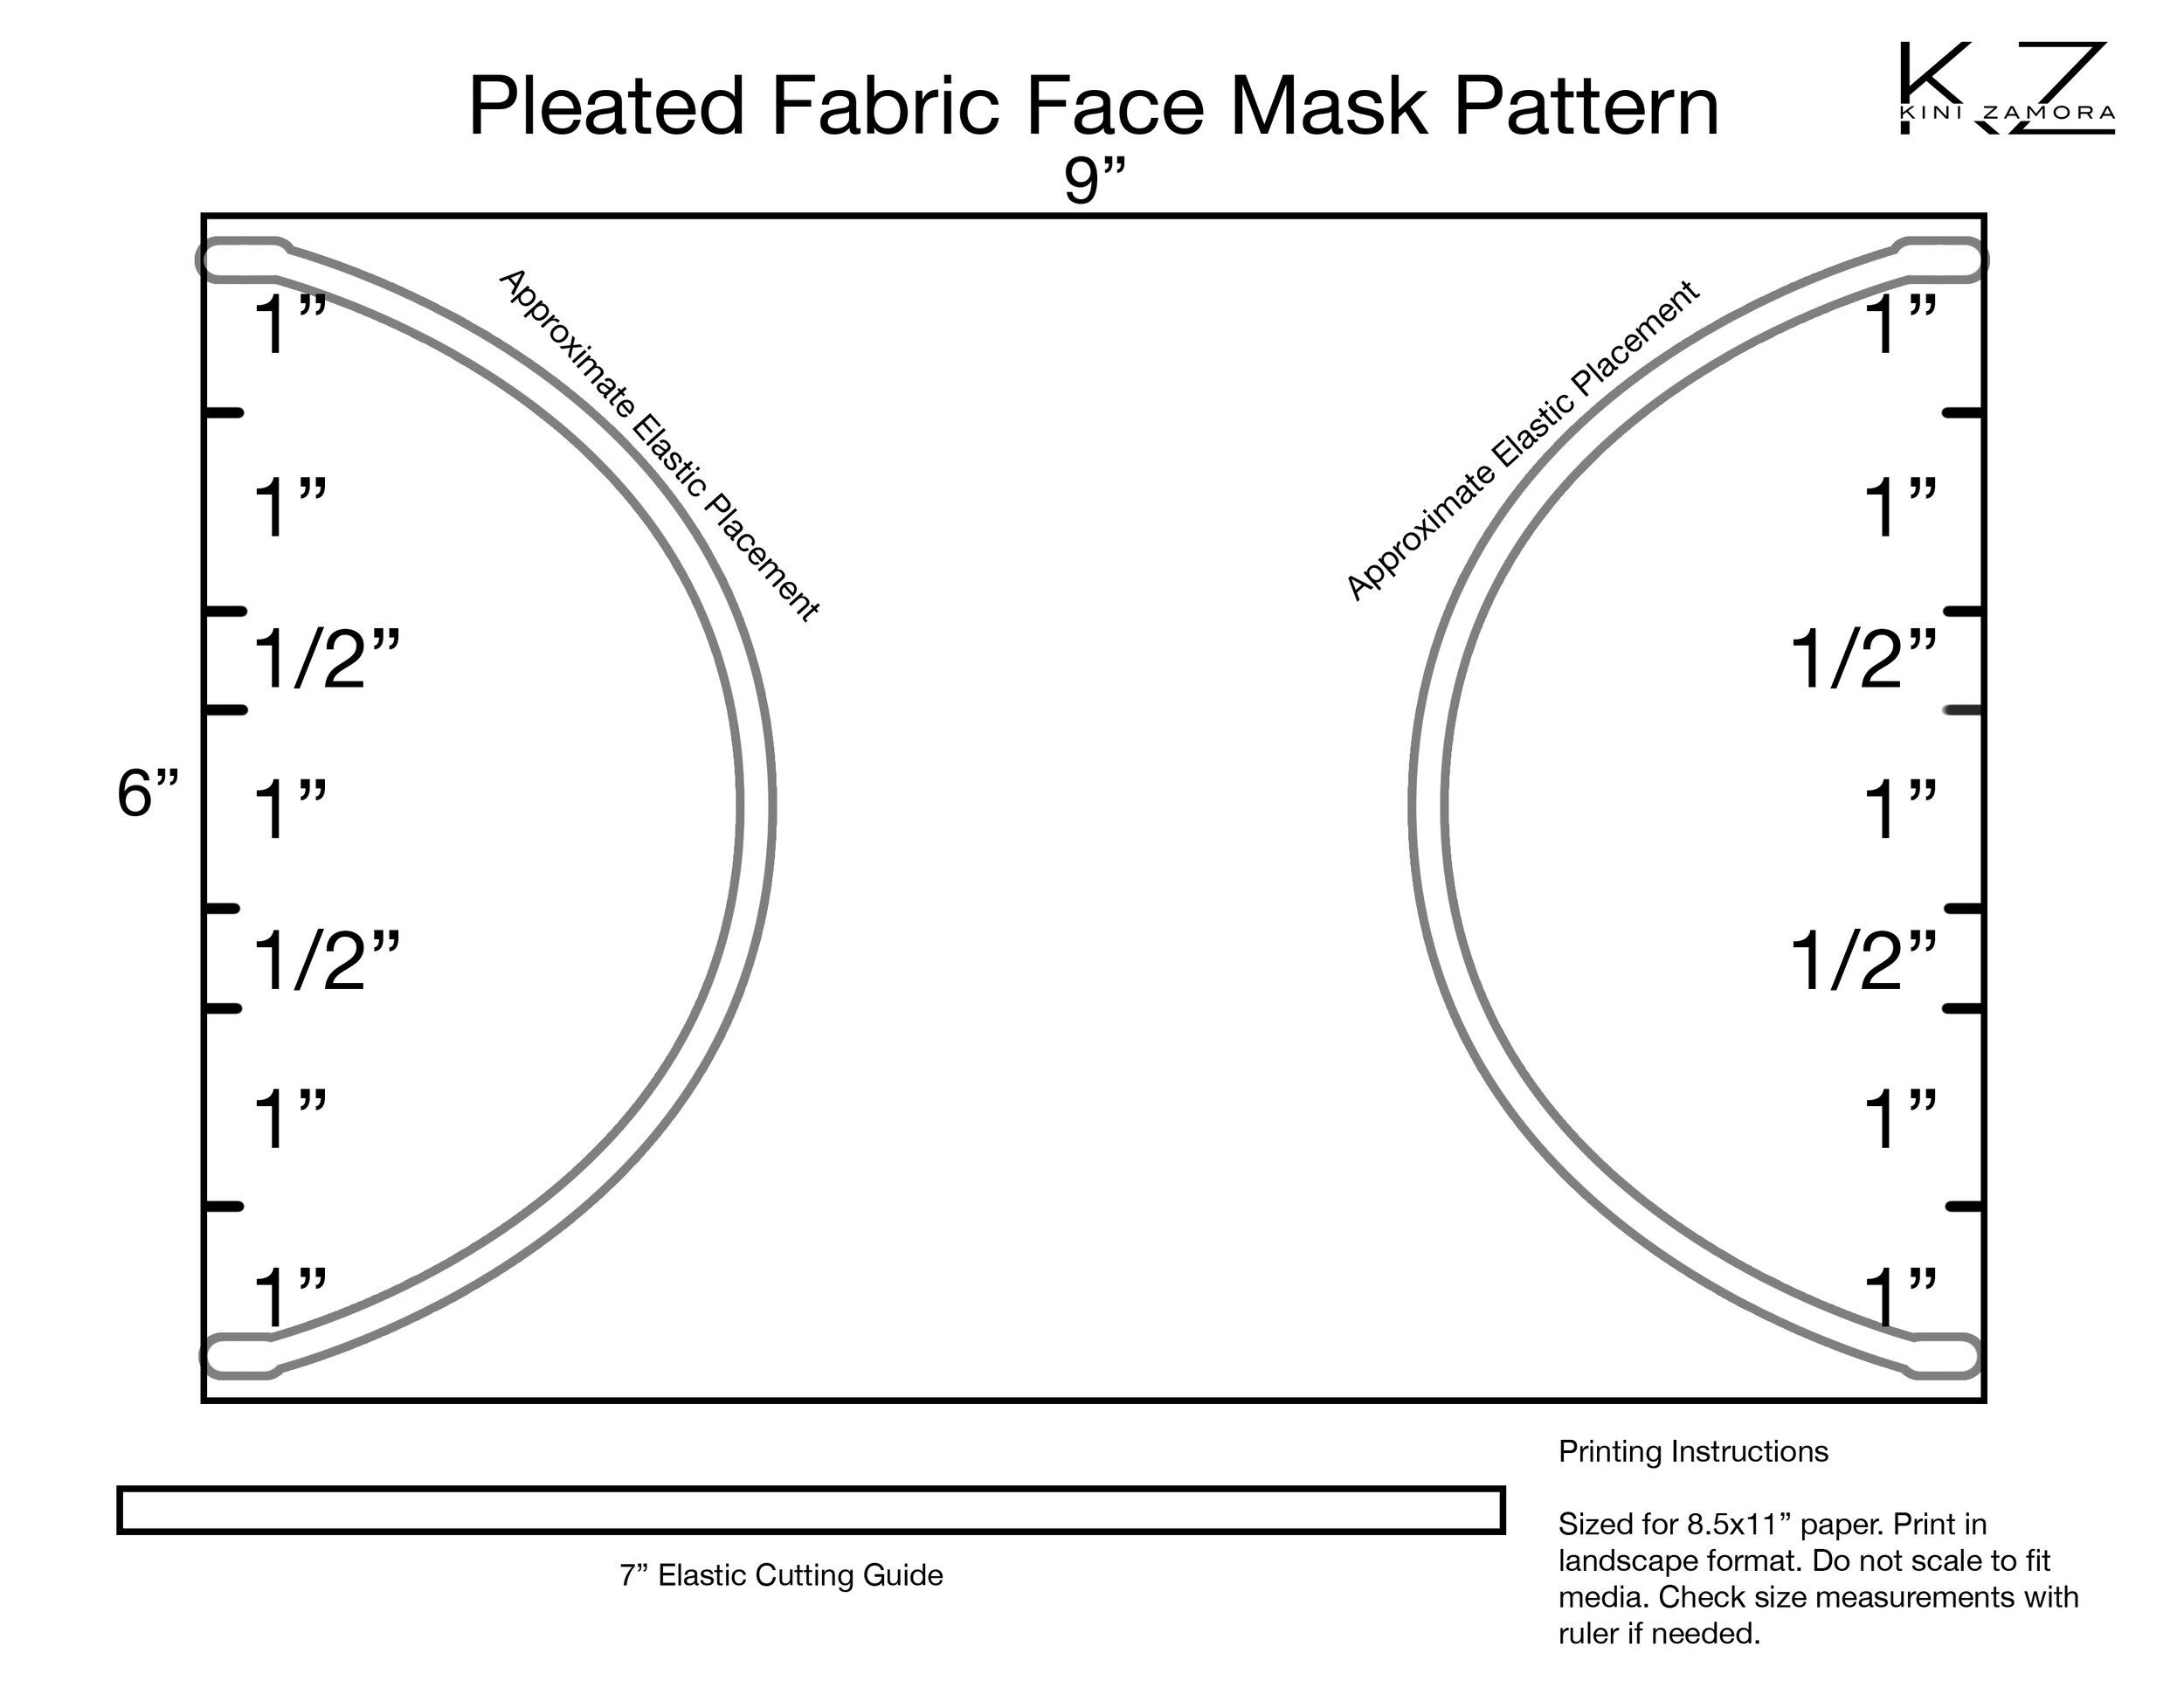 Simple Surgical Style 3 Pleats Face Mask Pattern In 2020 Face